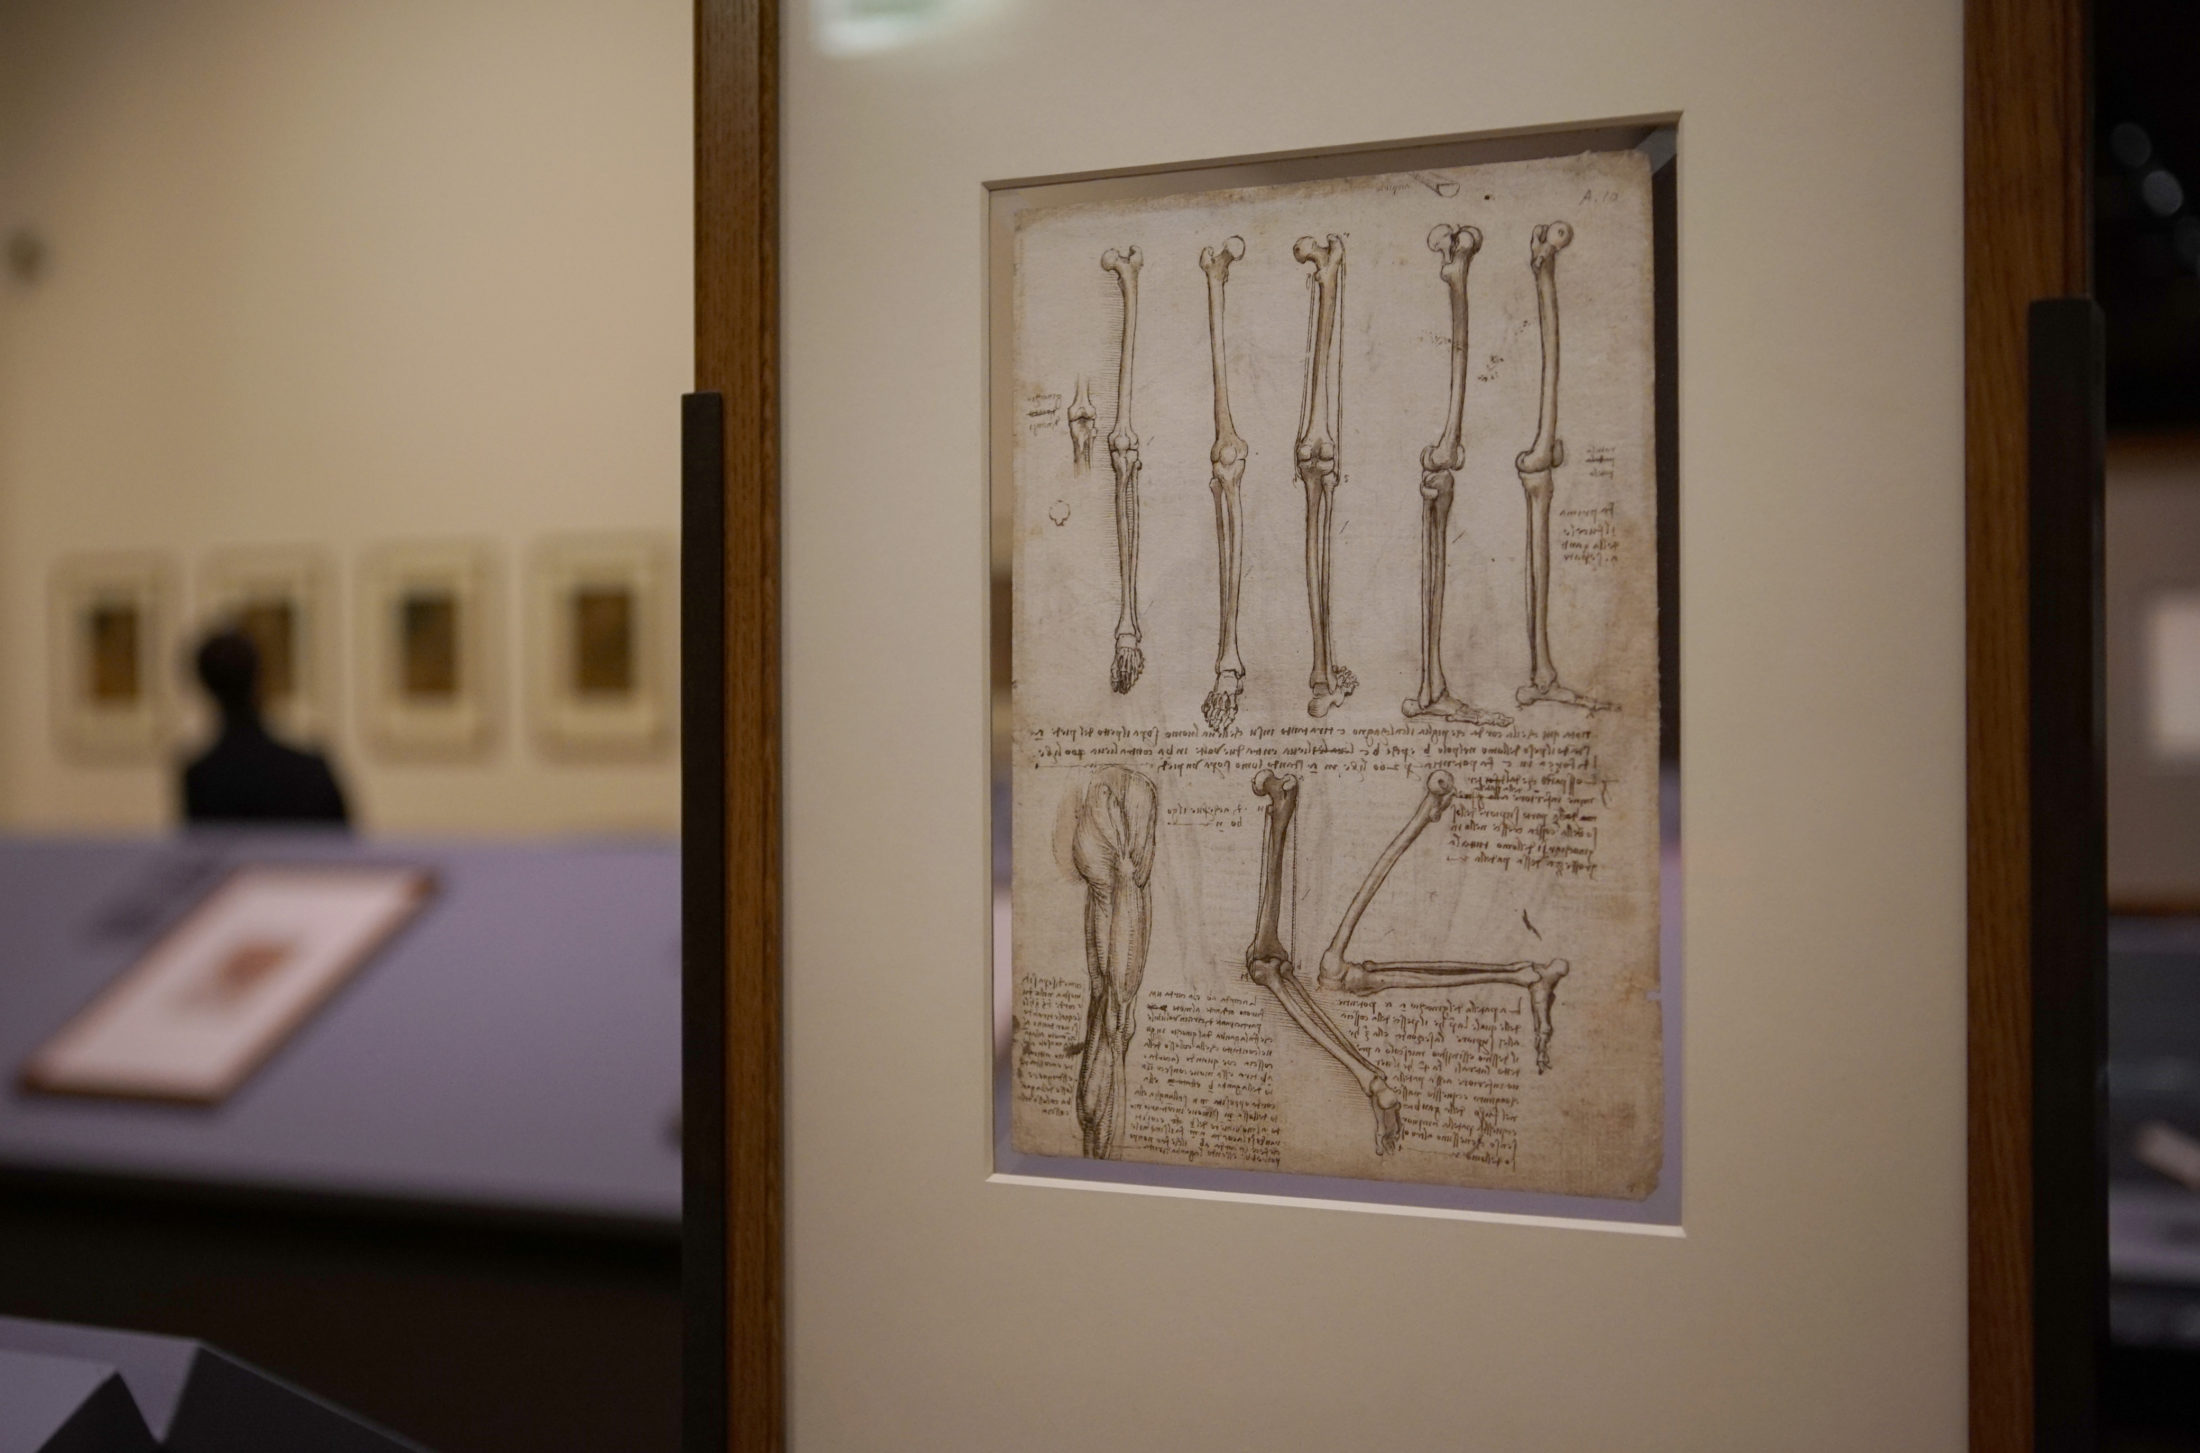 A da Vinci drawing that examines the movement of the arm. Photo by Joshua Barajas/PBS NewsHour